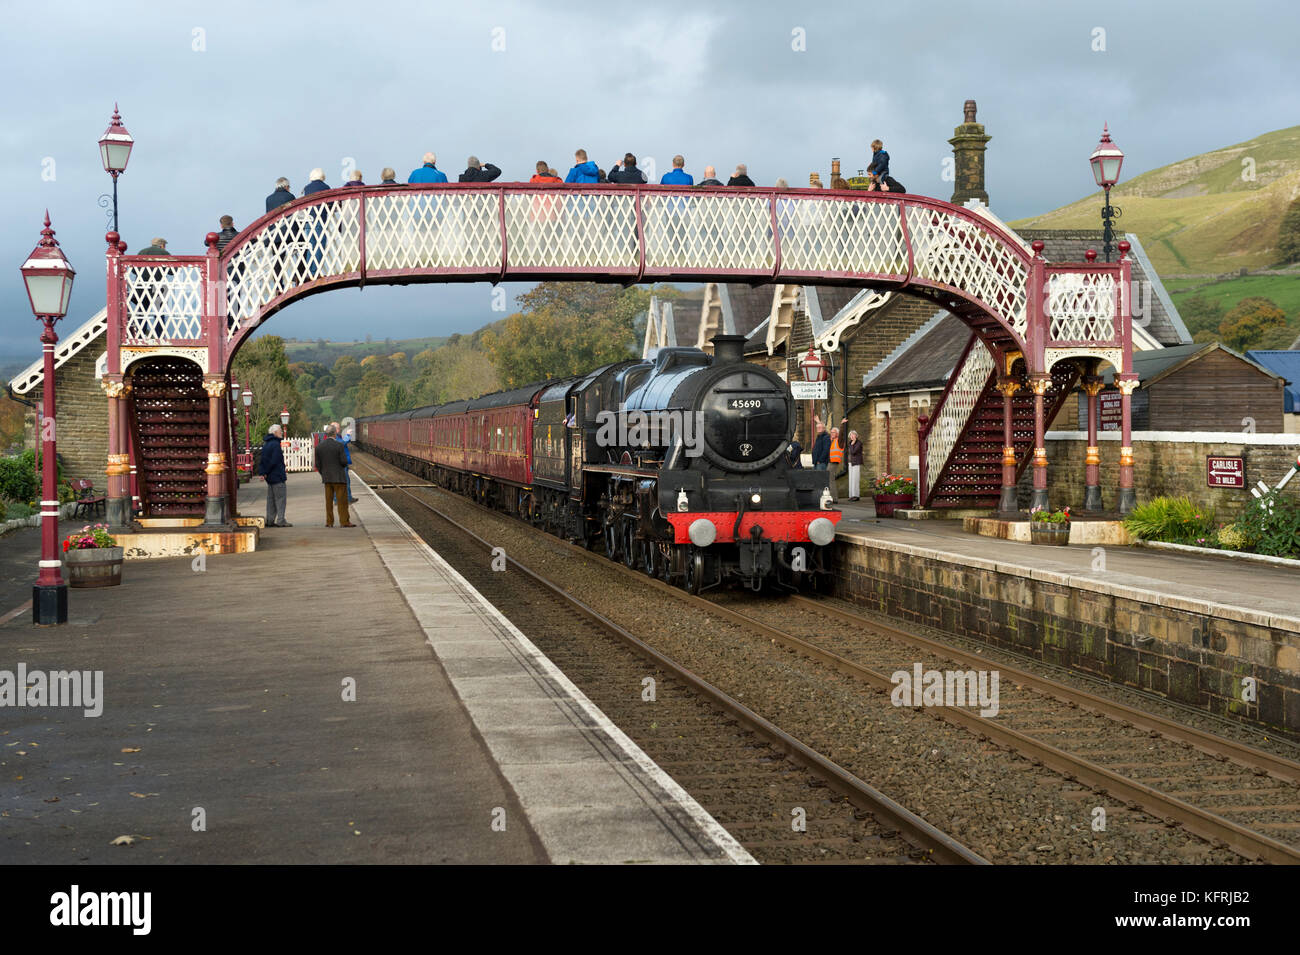 A steam special on the Settle-Carlisle railway line passes through Settle station, North Yorkshire, UK. The locomotive - Stock Image